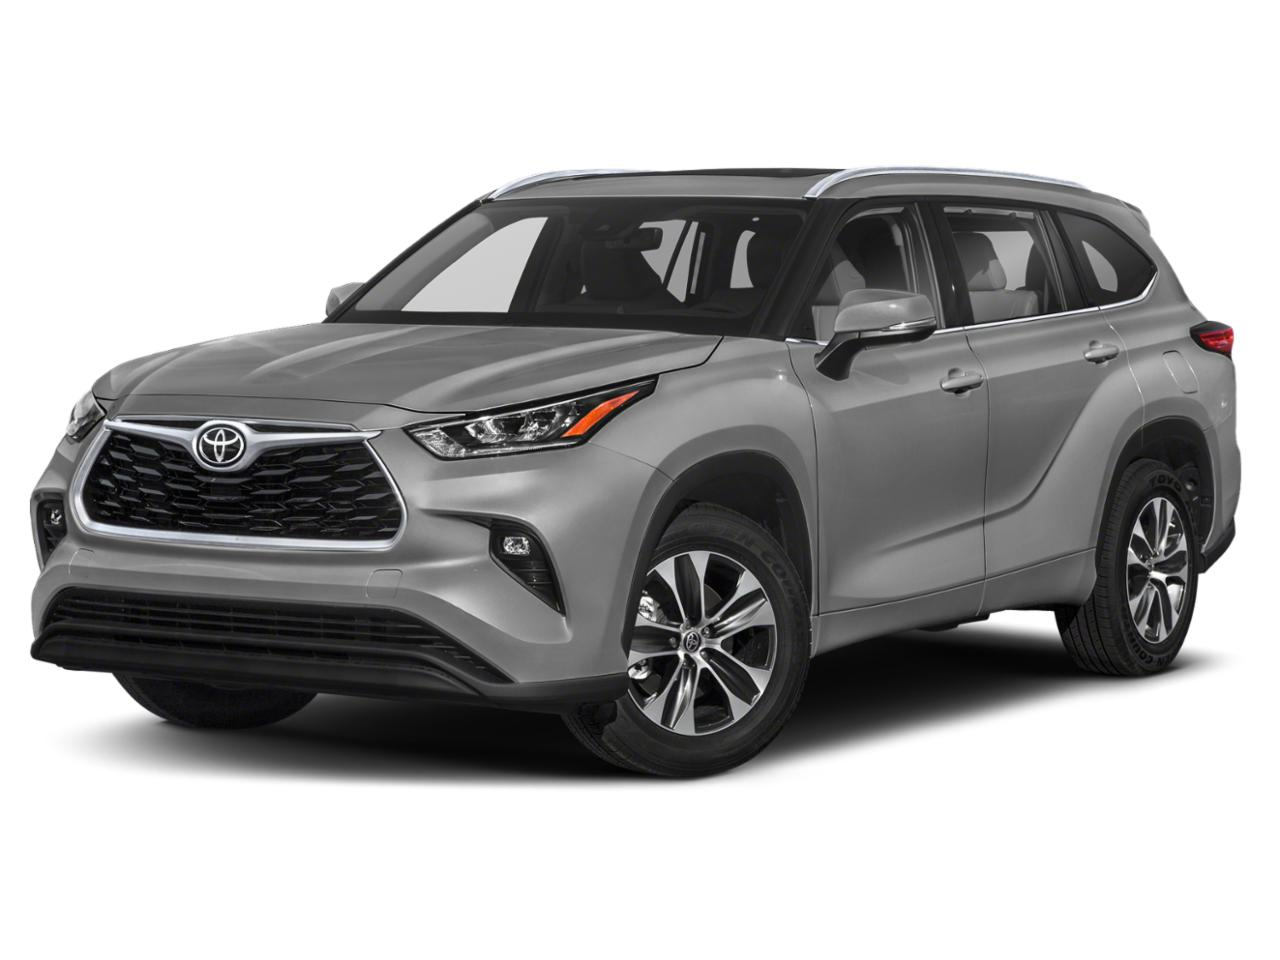 2020 Toyota Highlander Vehicle Photo in BOWIE, MD 20716-3617